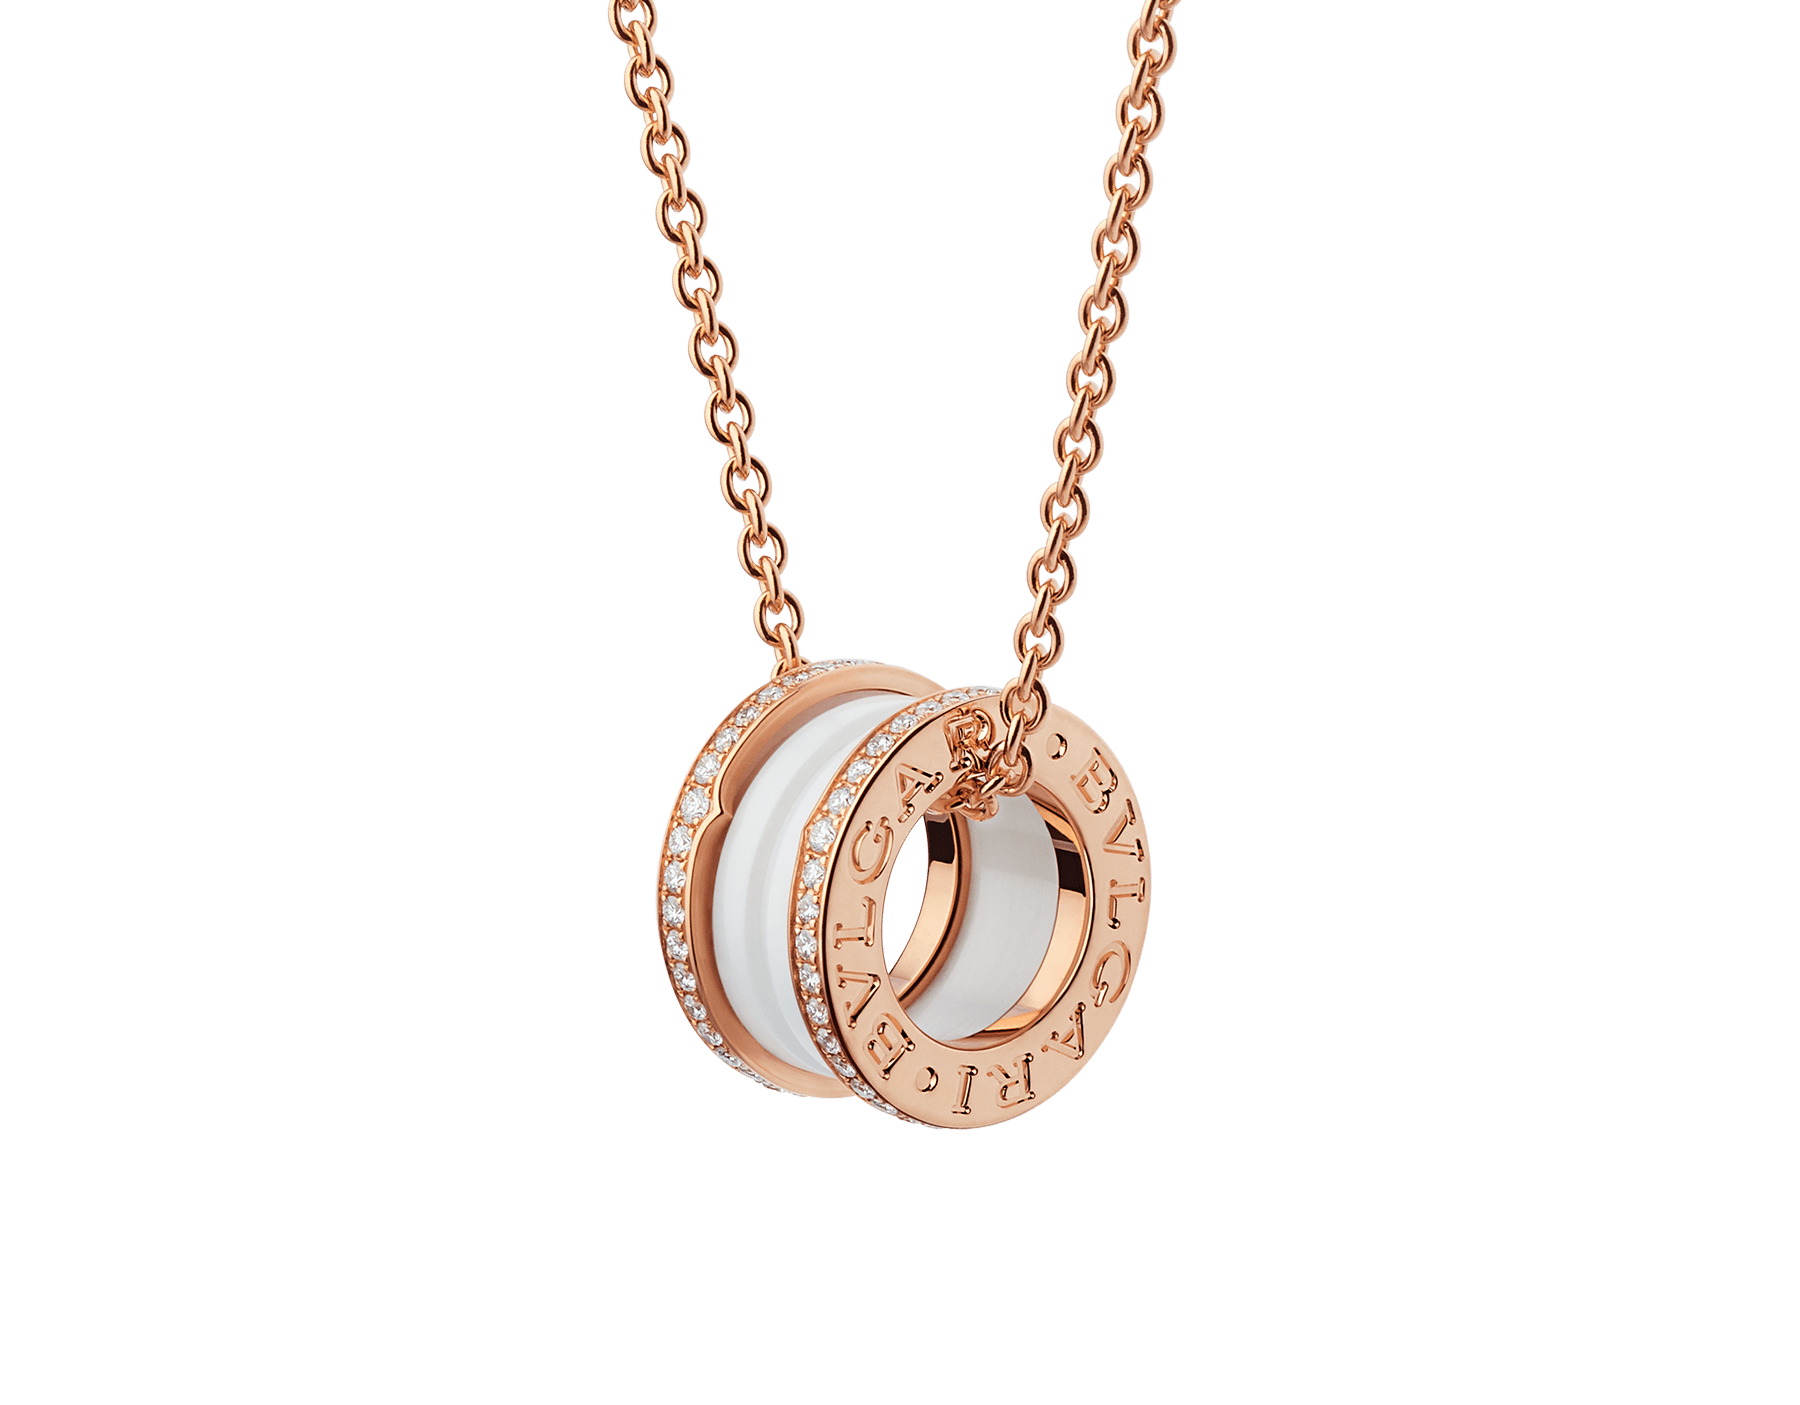 B.zero1 necklace with 18 kt rose gold chain and round pendant with two 18 kt rose gold loops set with pavé diamonds on the edges and a white ceramic spiral. 350053 image 1